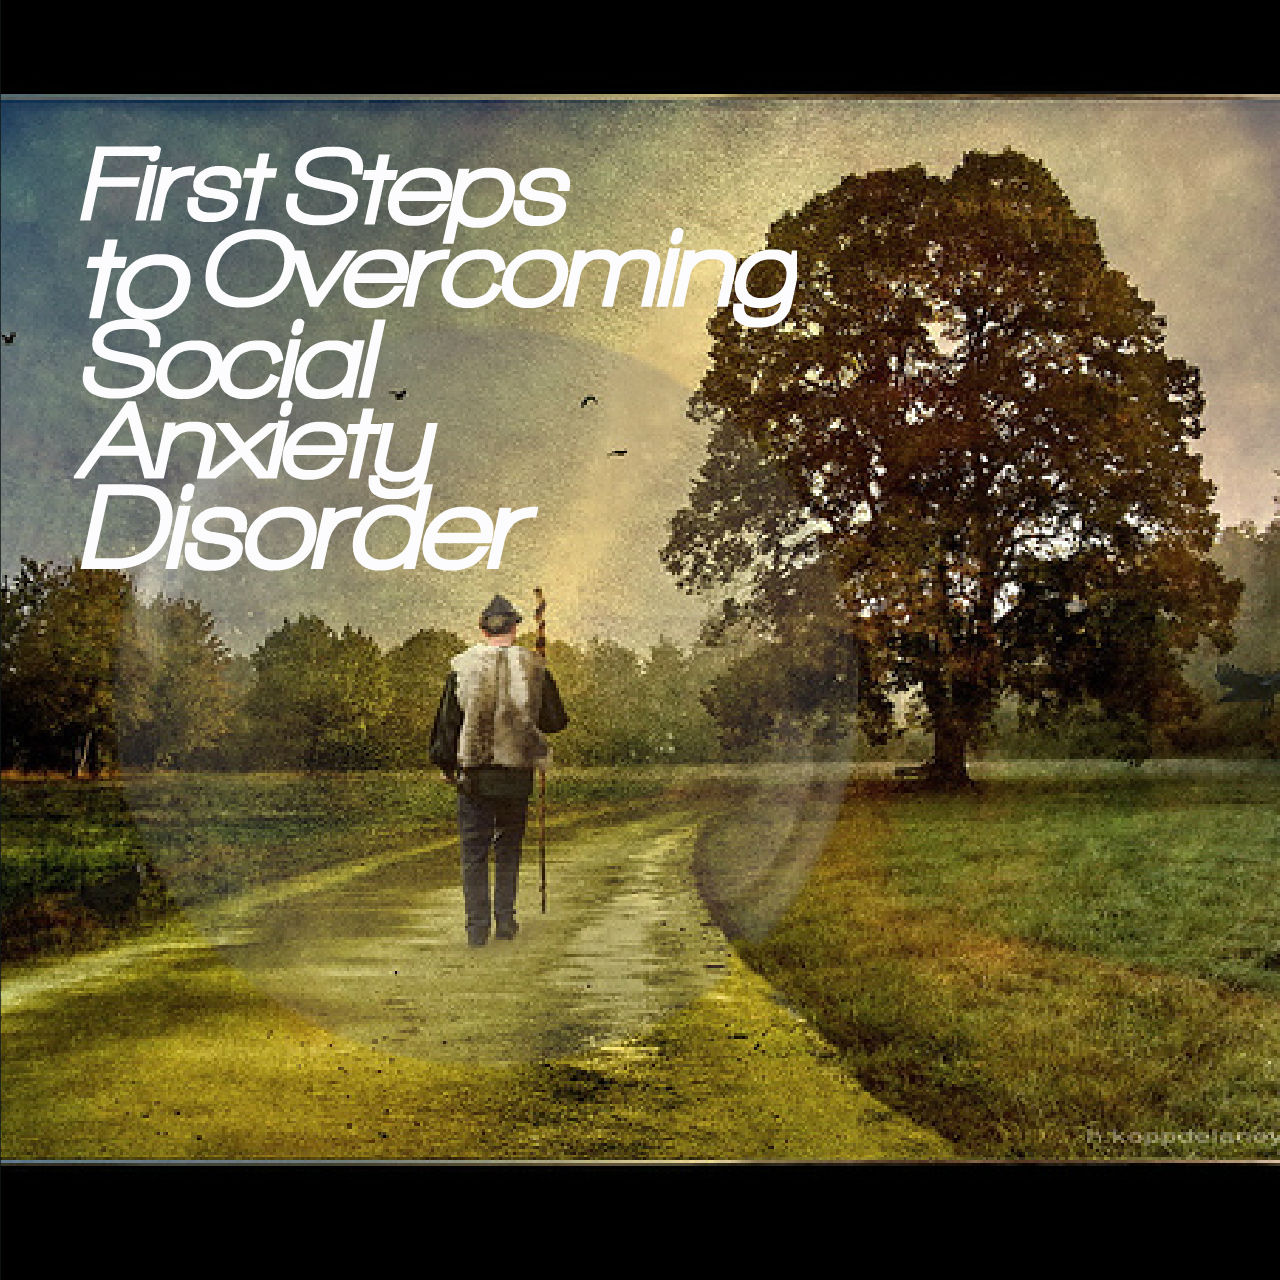 First Steps To Overcoming Social Anxiety Disorder